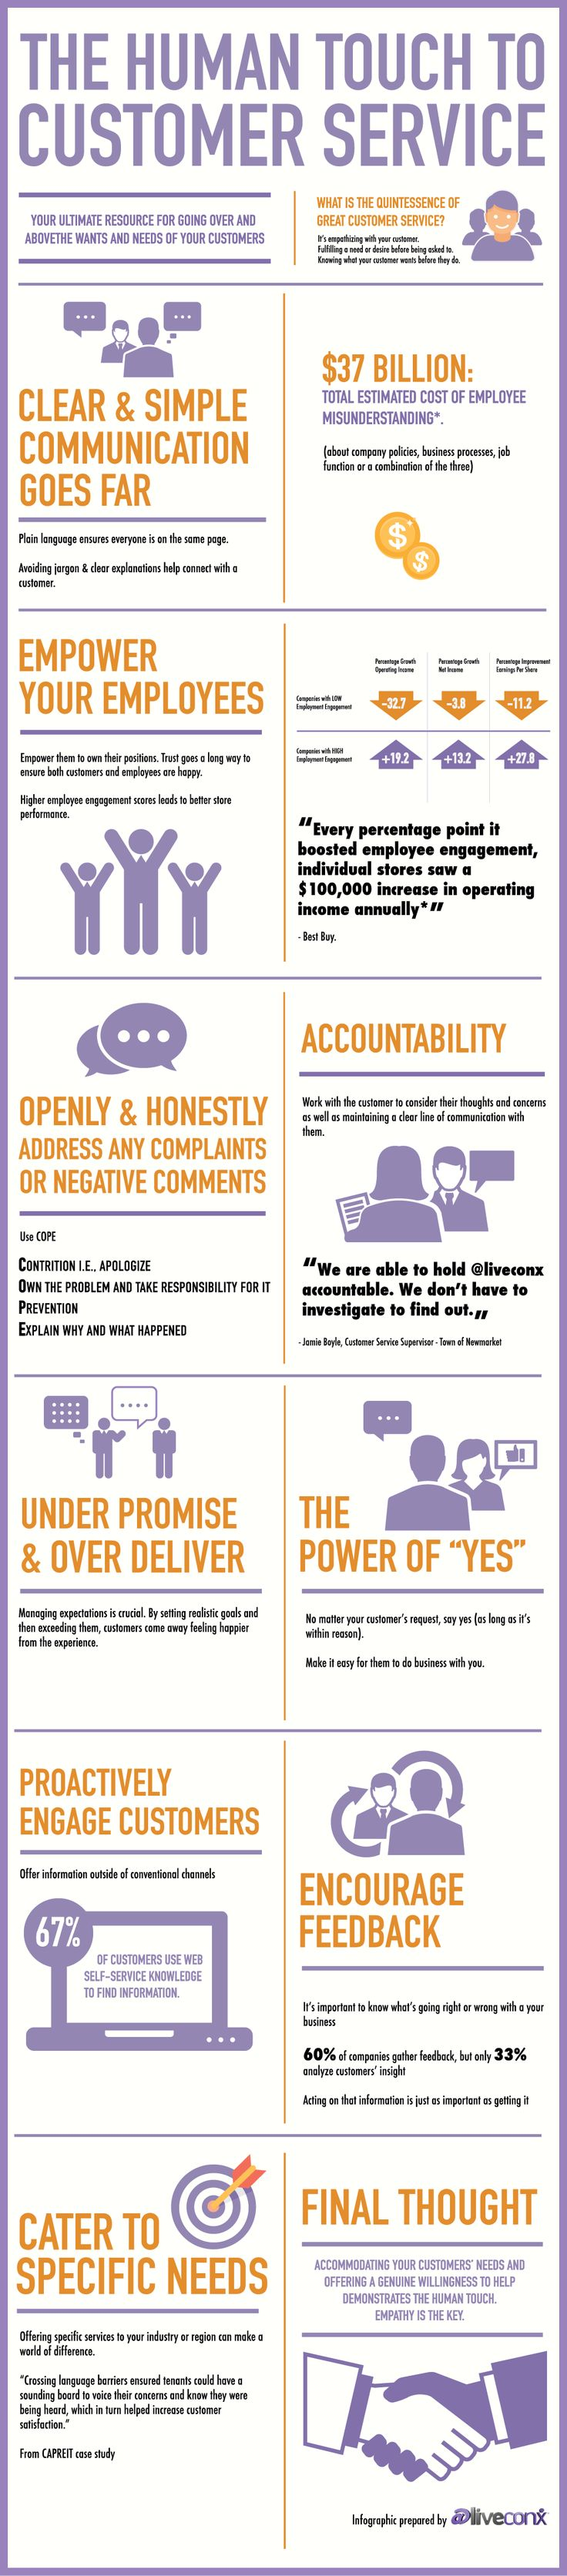 137 Best Images About Customer Experience On Pinterest  Loyalty, Investing  And Customer Lifetime Value